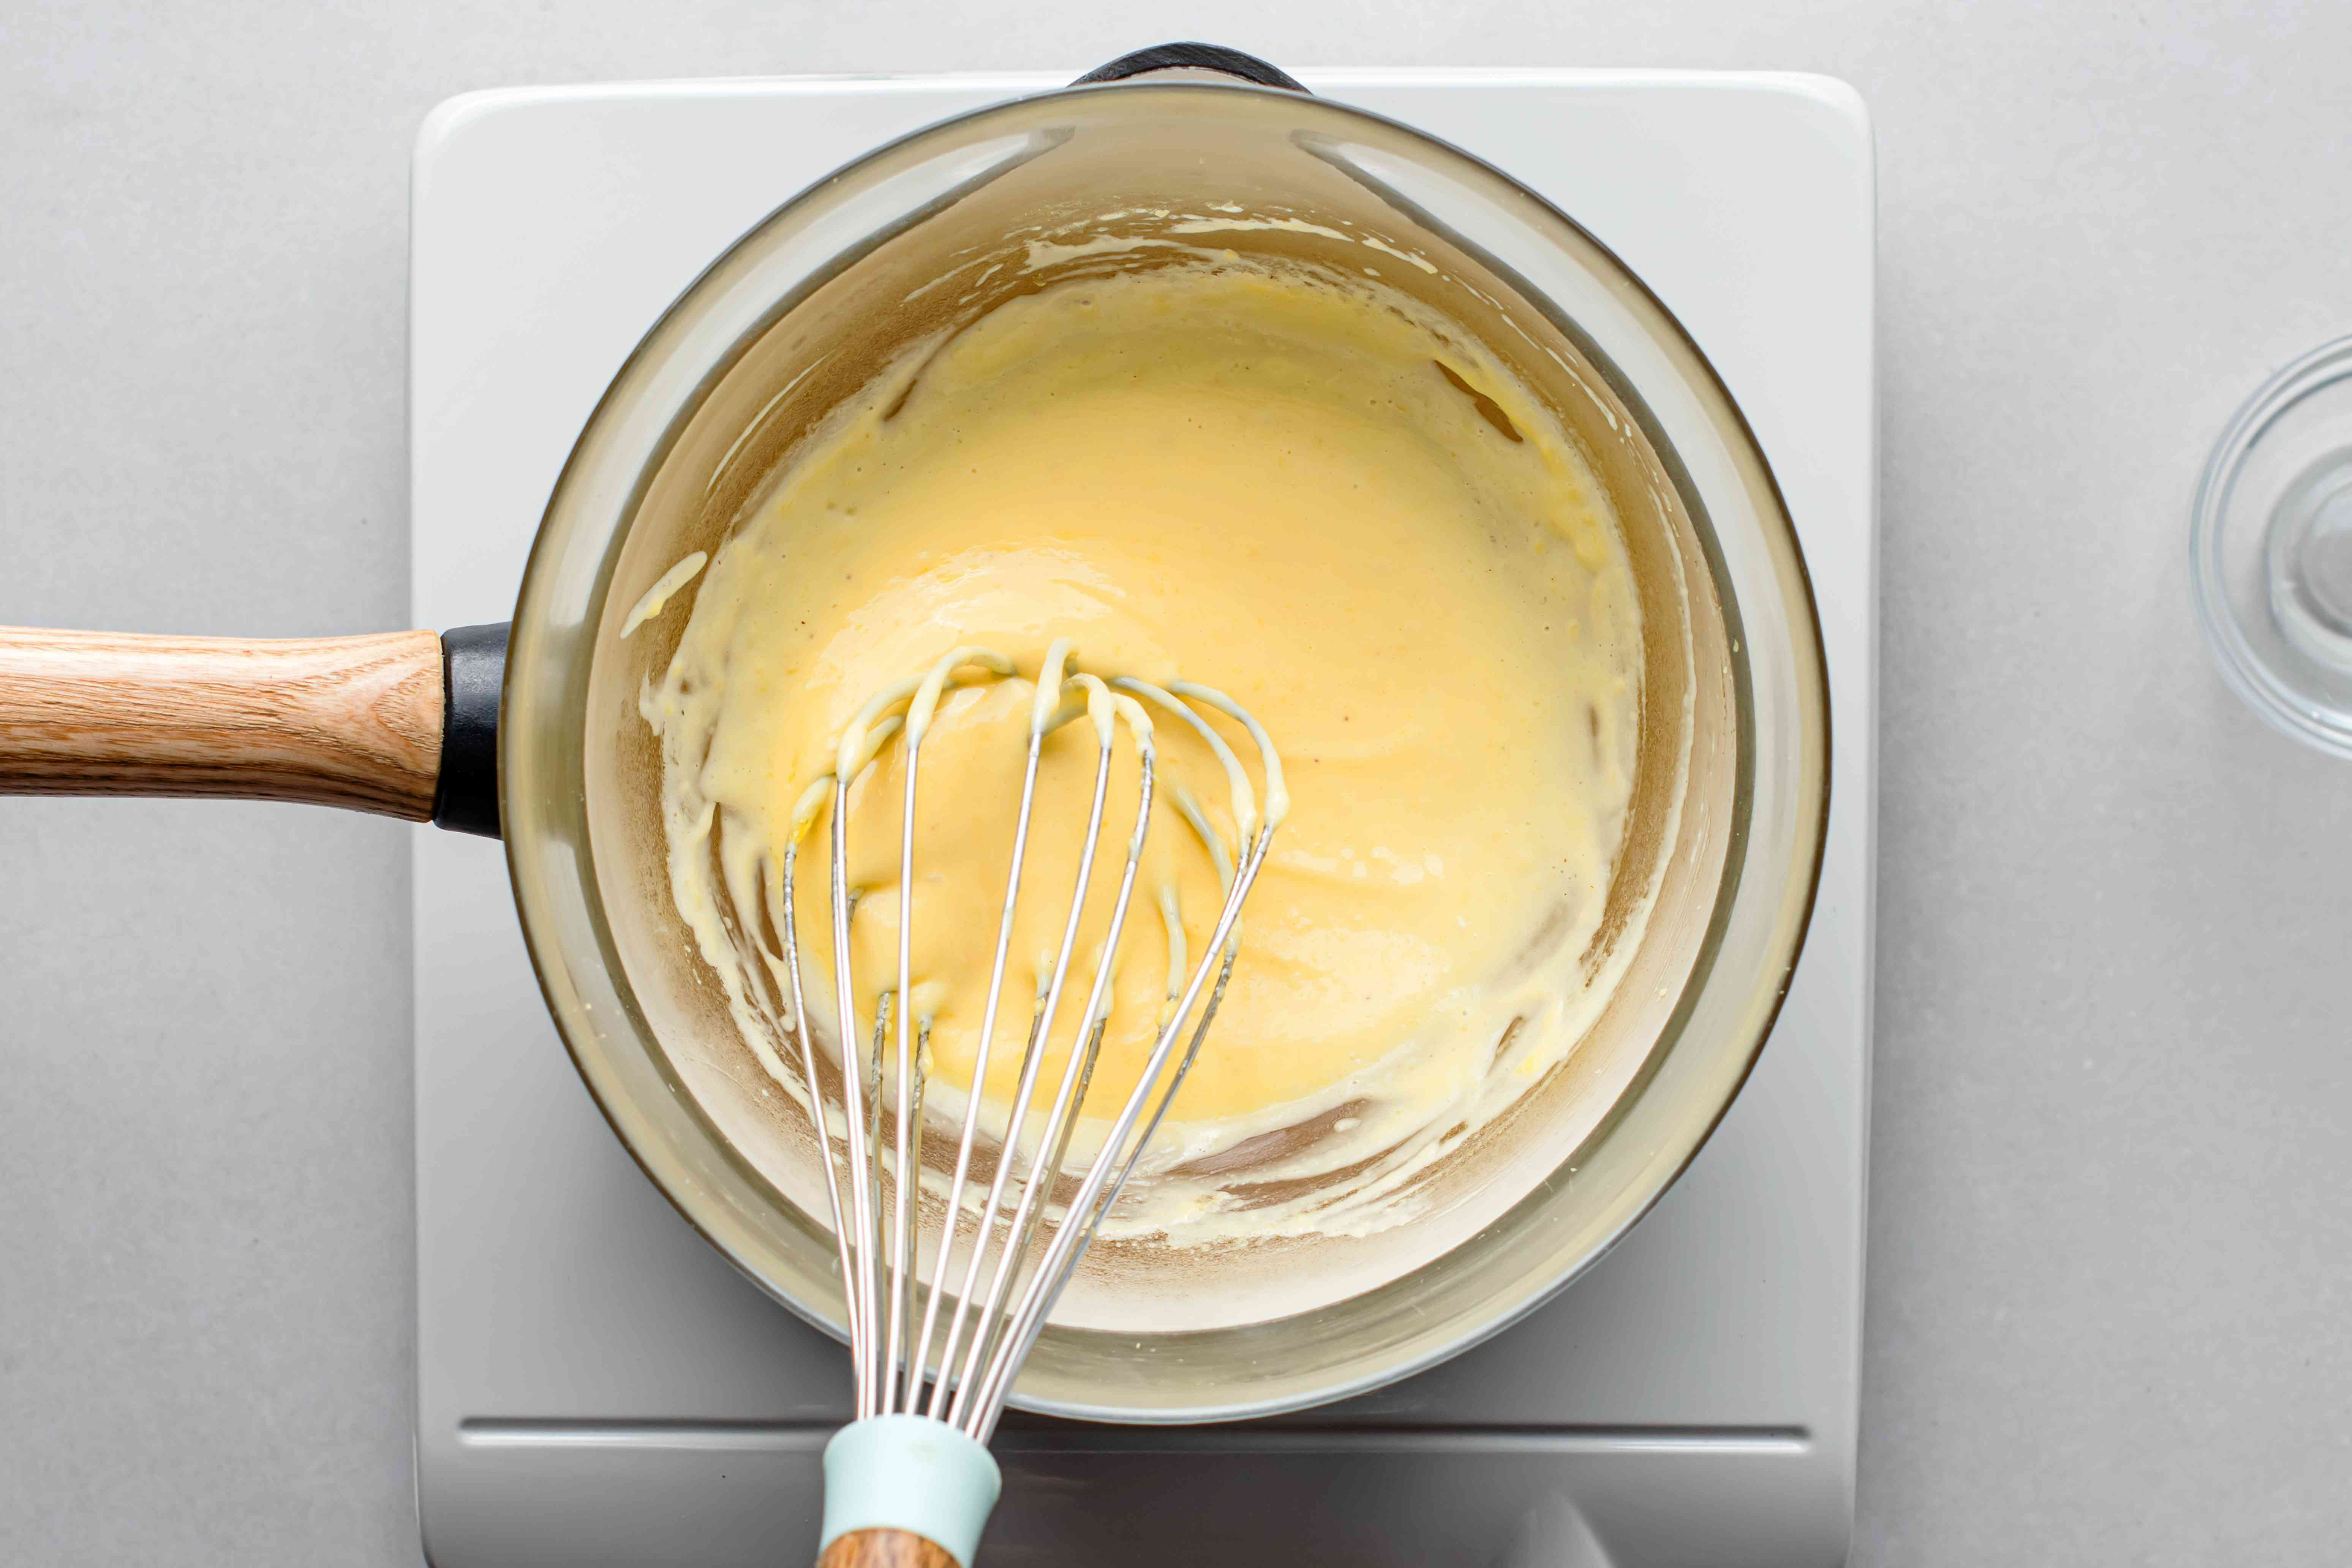 Hollandaise sauce mixture whisked over a double boiler